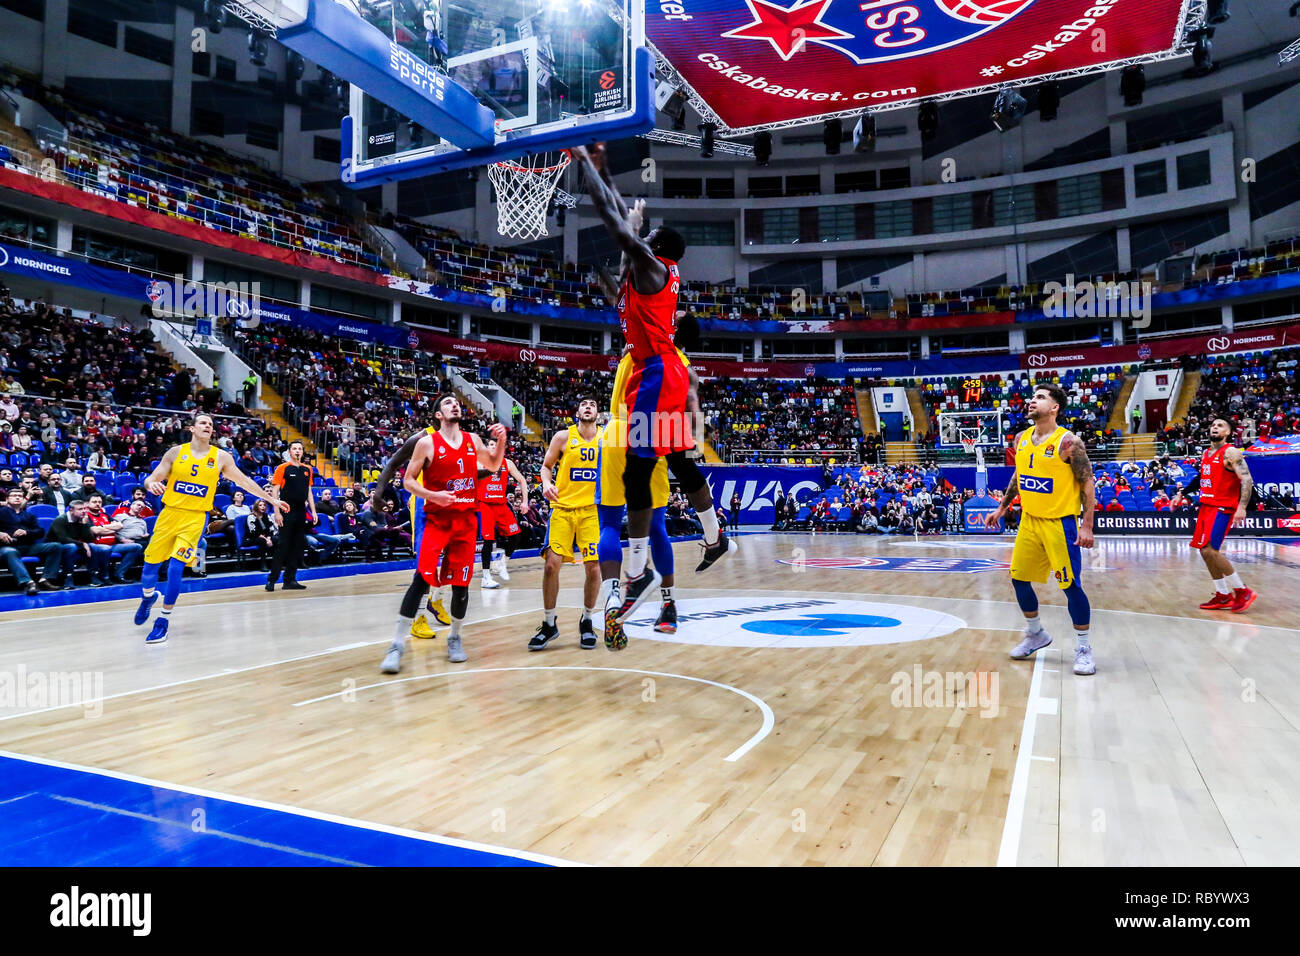 Othello Hunter, #44 of CSKA Moscow seen in action against Maccabi Tel Aviv in Round 18 of the Turkish Airlines Euroleague game of the 2018-2019 season. Maccabi Tel Aviv beat CSKA Moscow, 93-76. - Stock Image